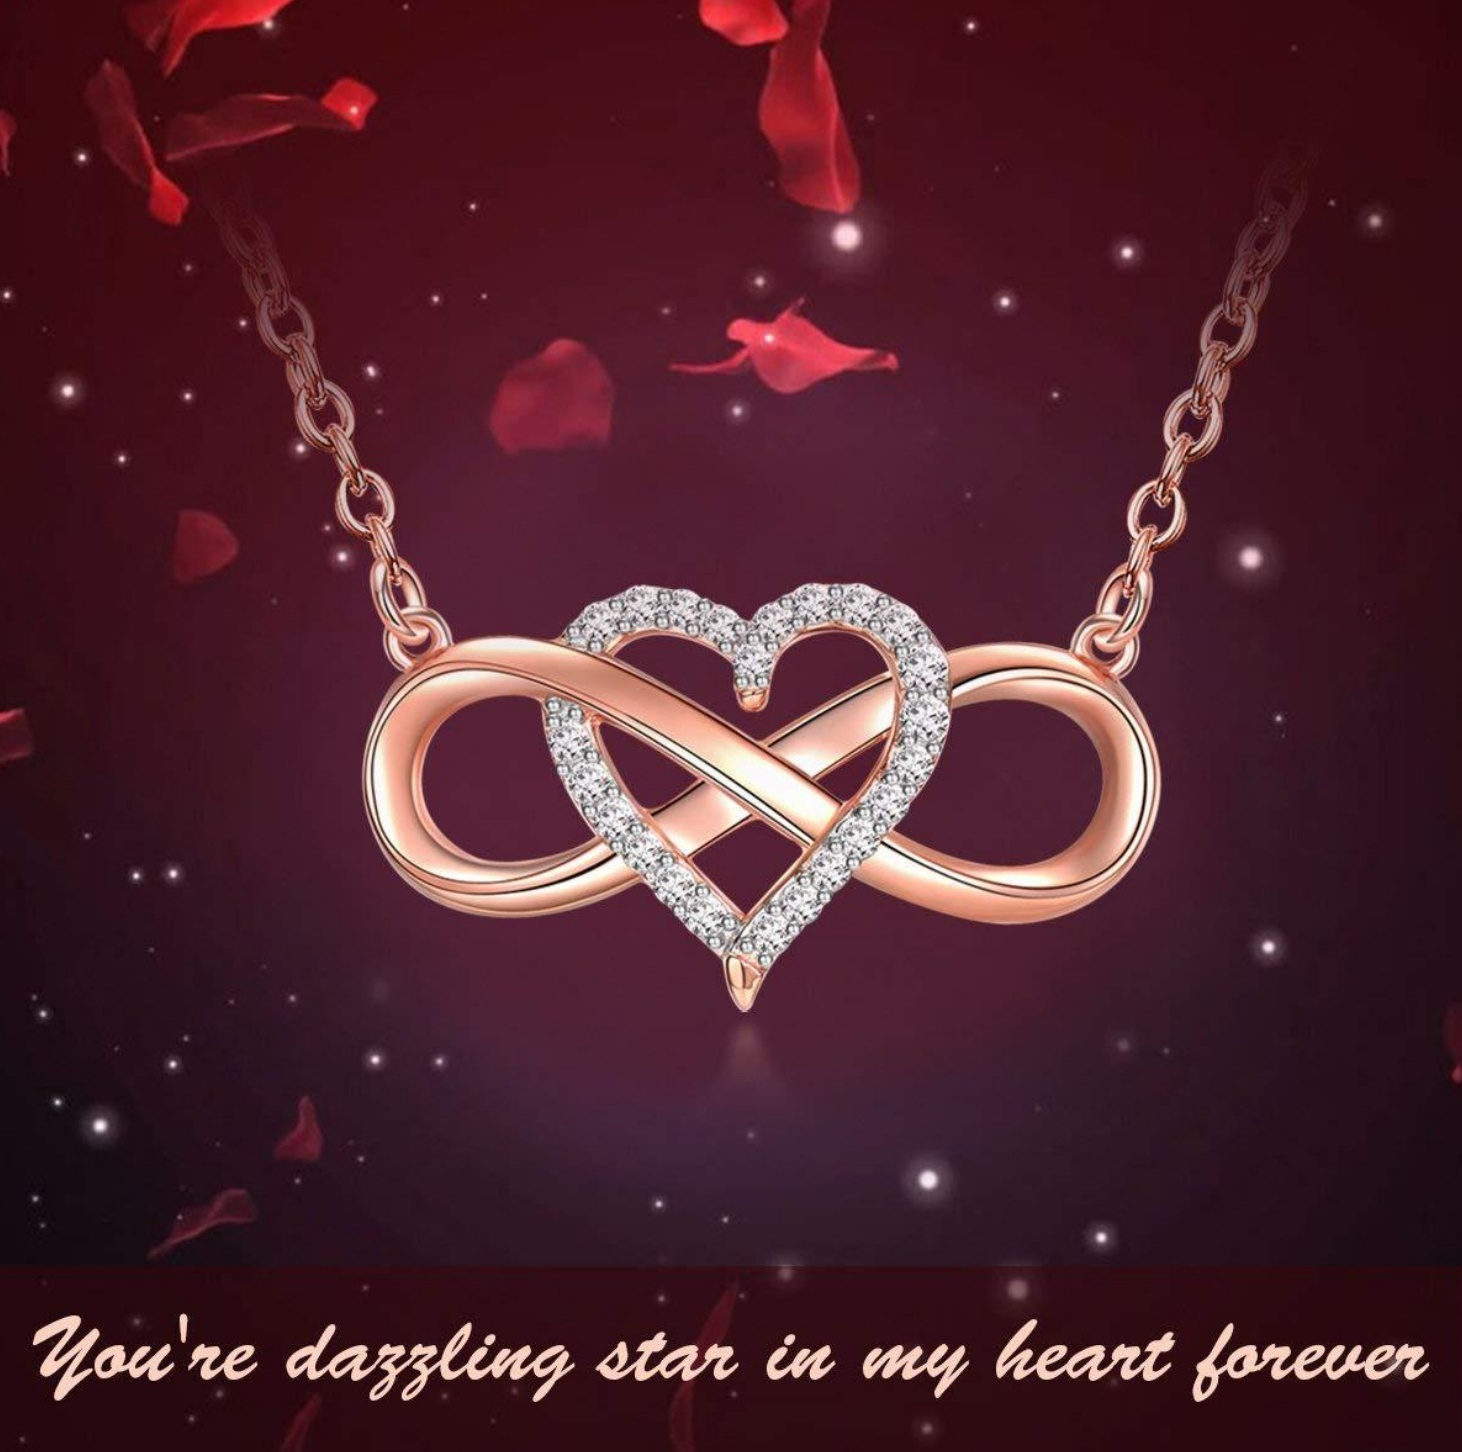 Charming Valentine Gifts Stylish White Infinity Heart Pendant Chain Necklace For Women Mom Girlfriend Wife Gifts image